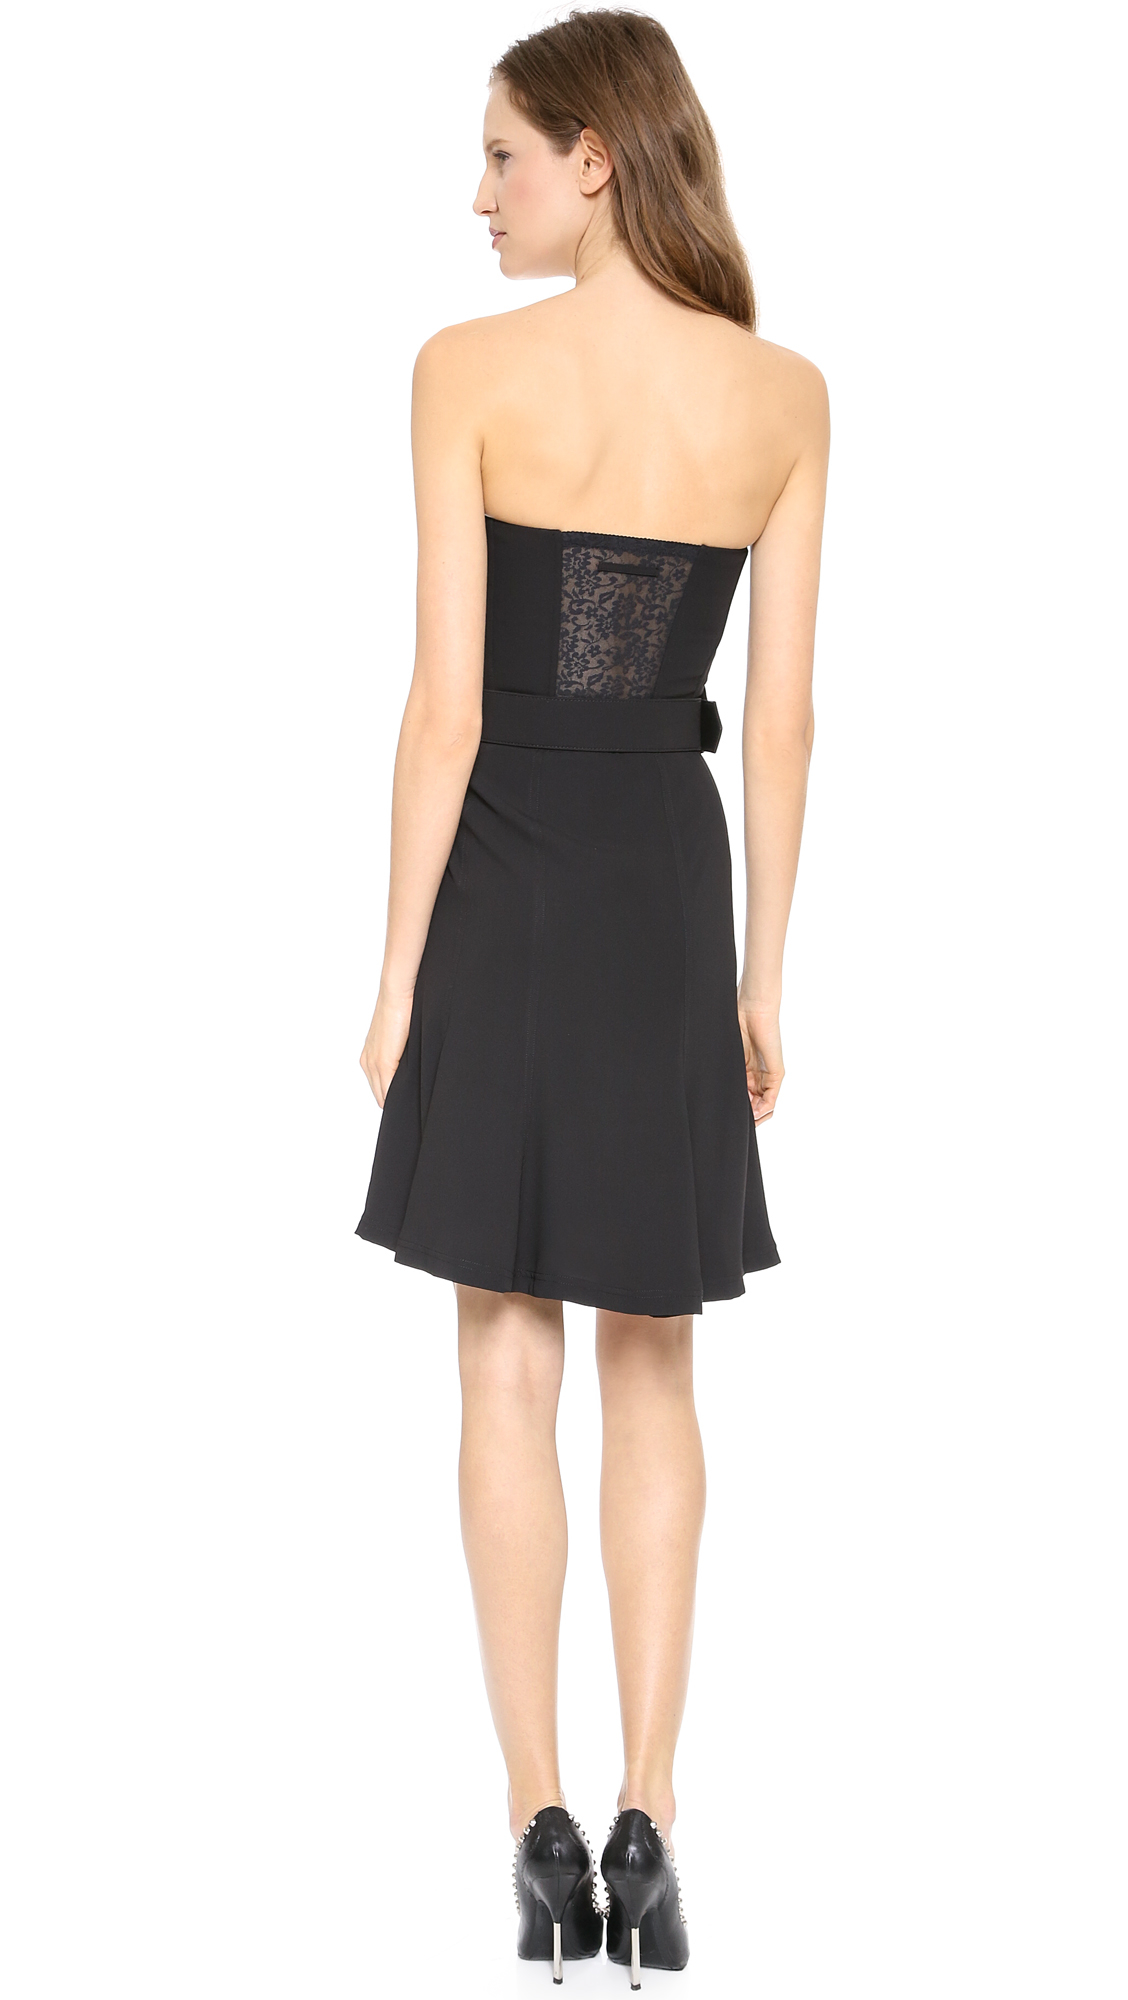 Lyst Jean Paul Gaultier Strapless Bustier Dress Black